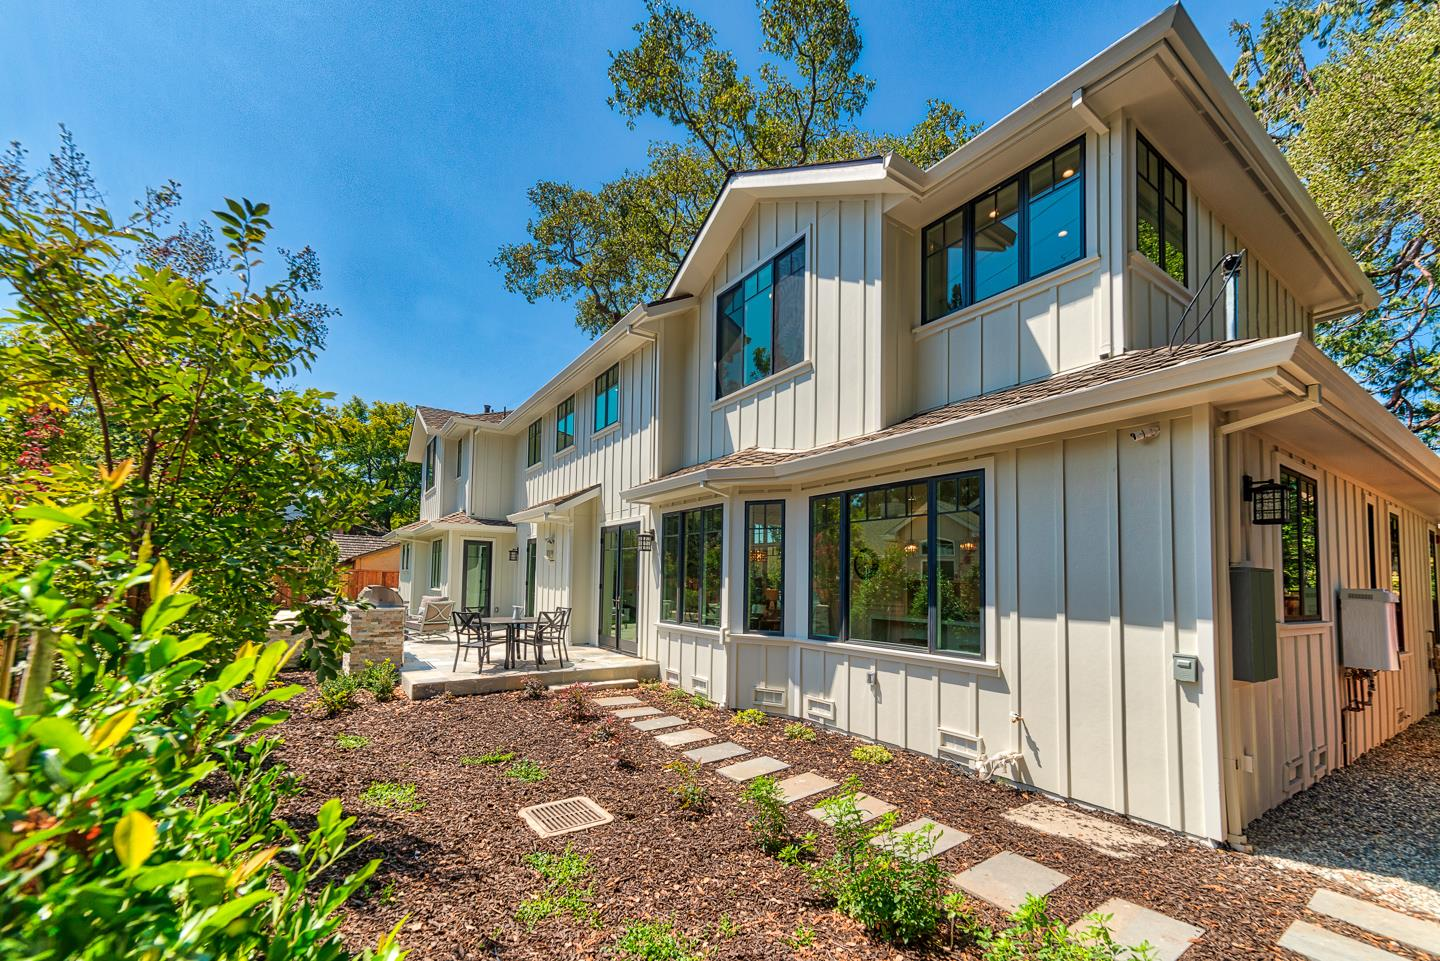 240 Ringwood Avenue Menlo Park, CA 94025 - MLS #: ML81722089